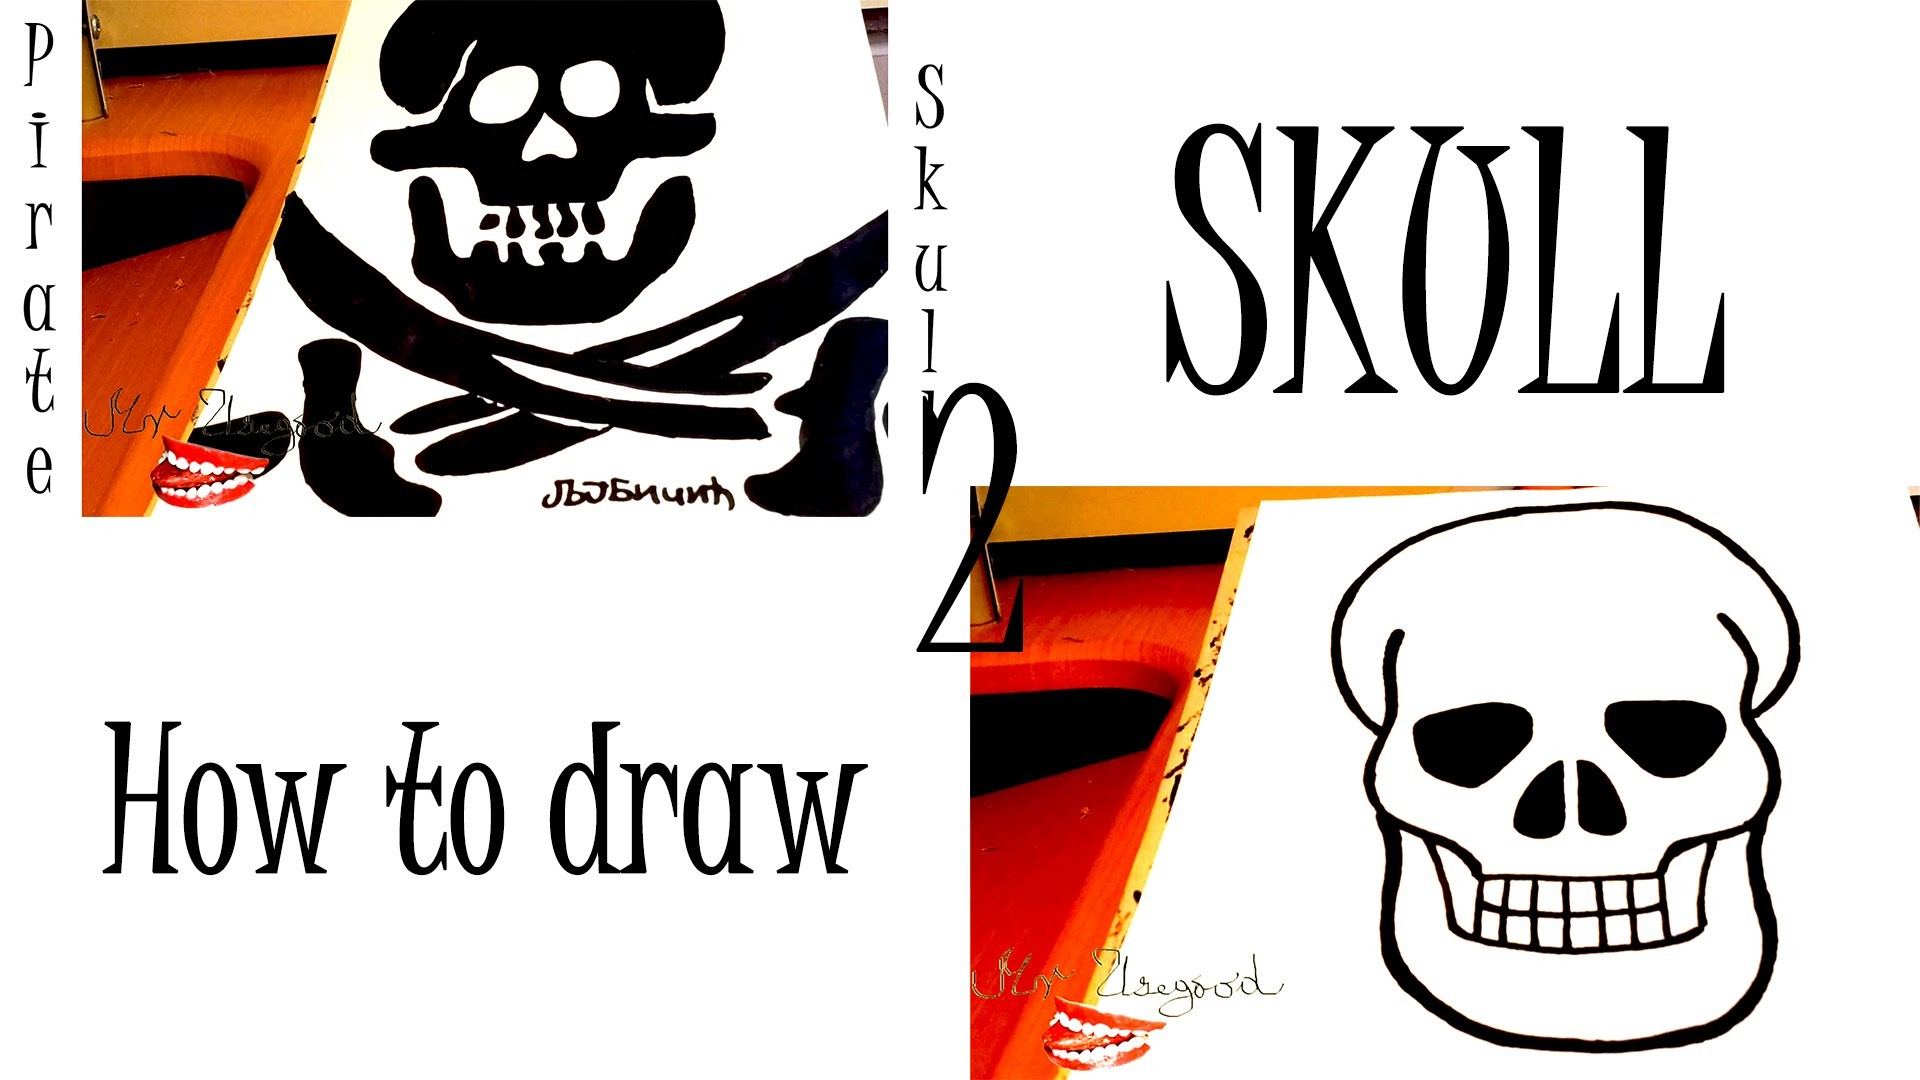 1920x1080 How To Draw A Skull And A Pirate Skull Easy For Beginners And Kids